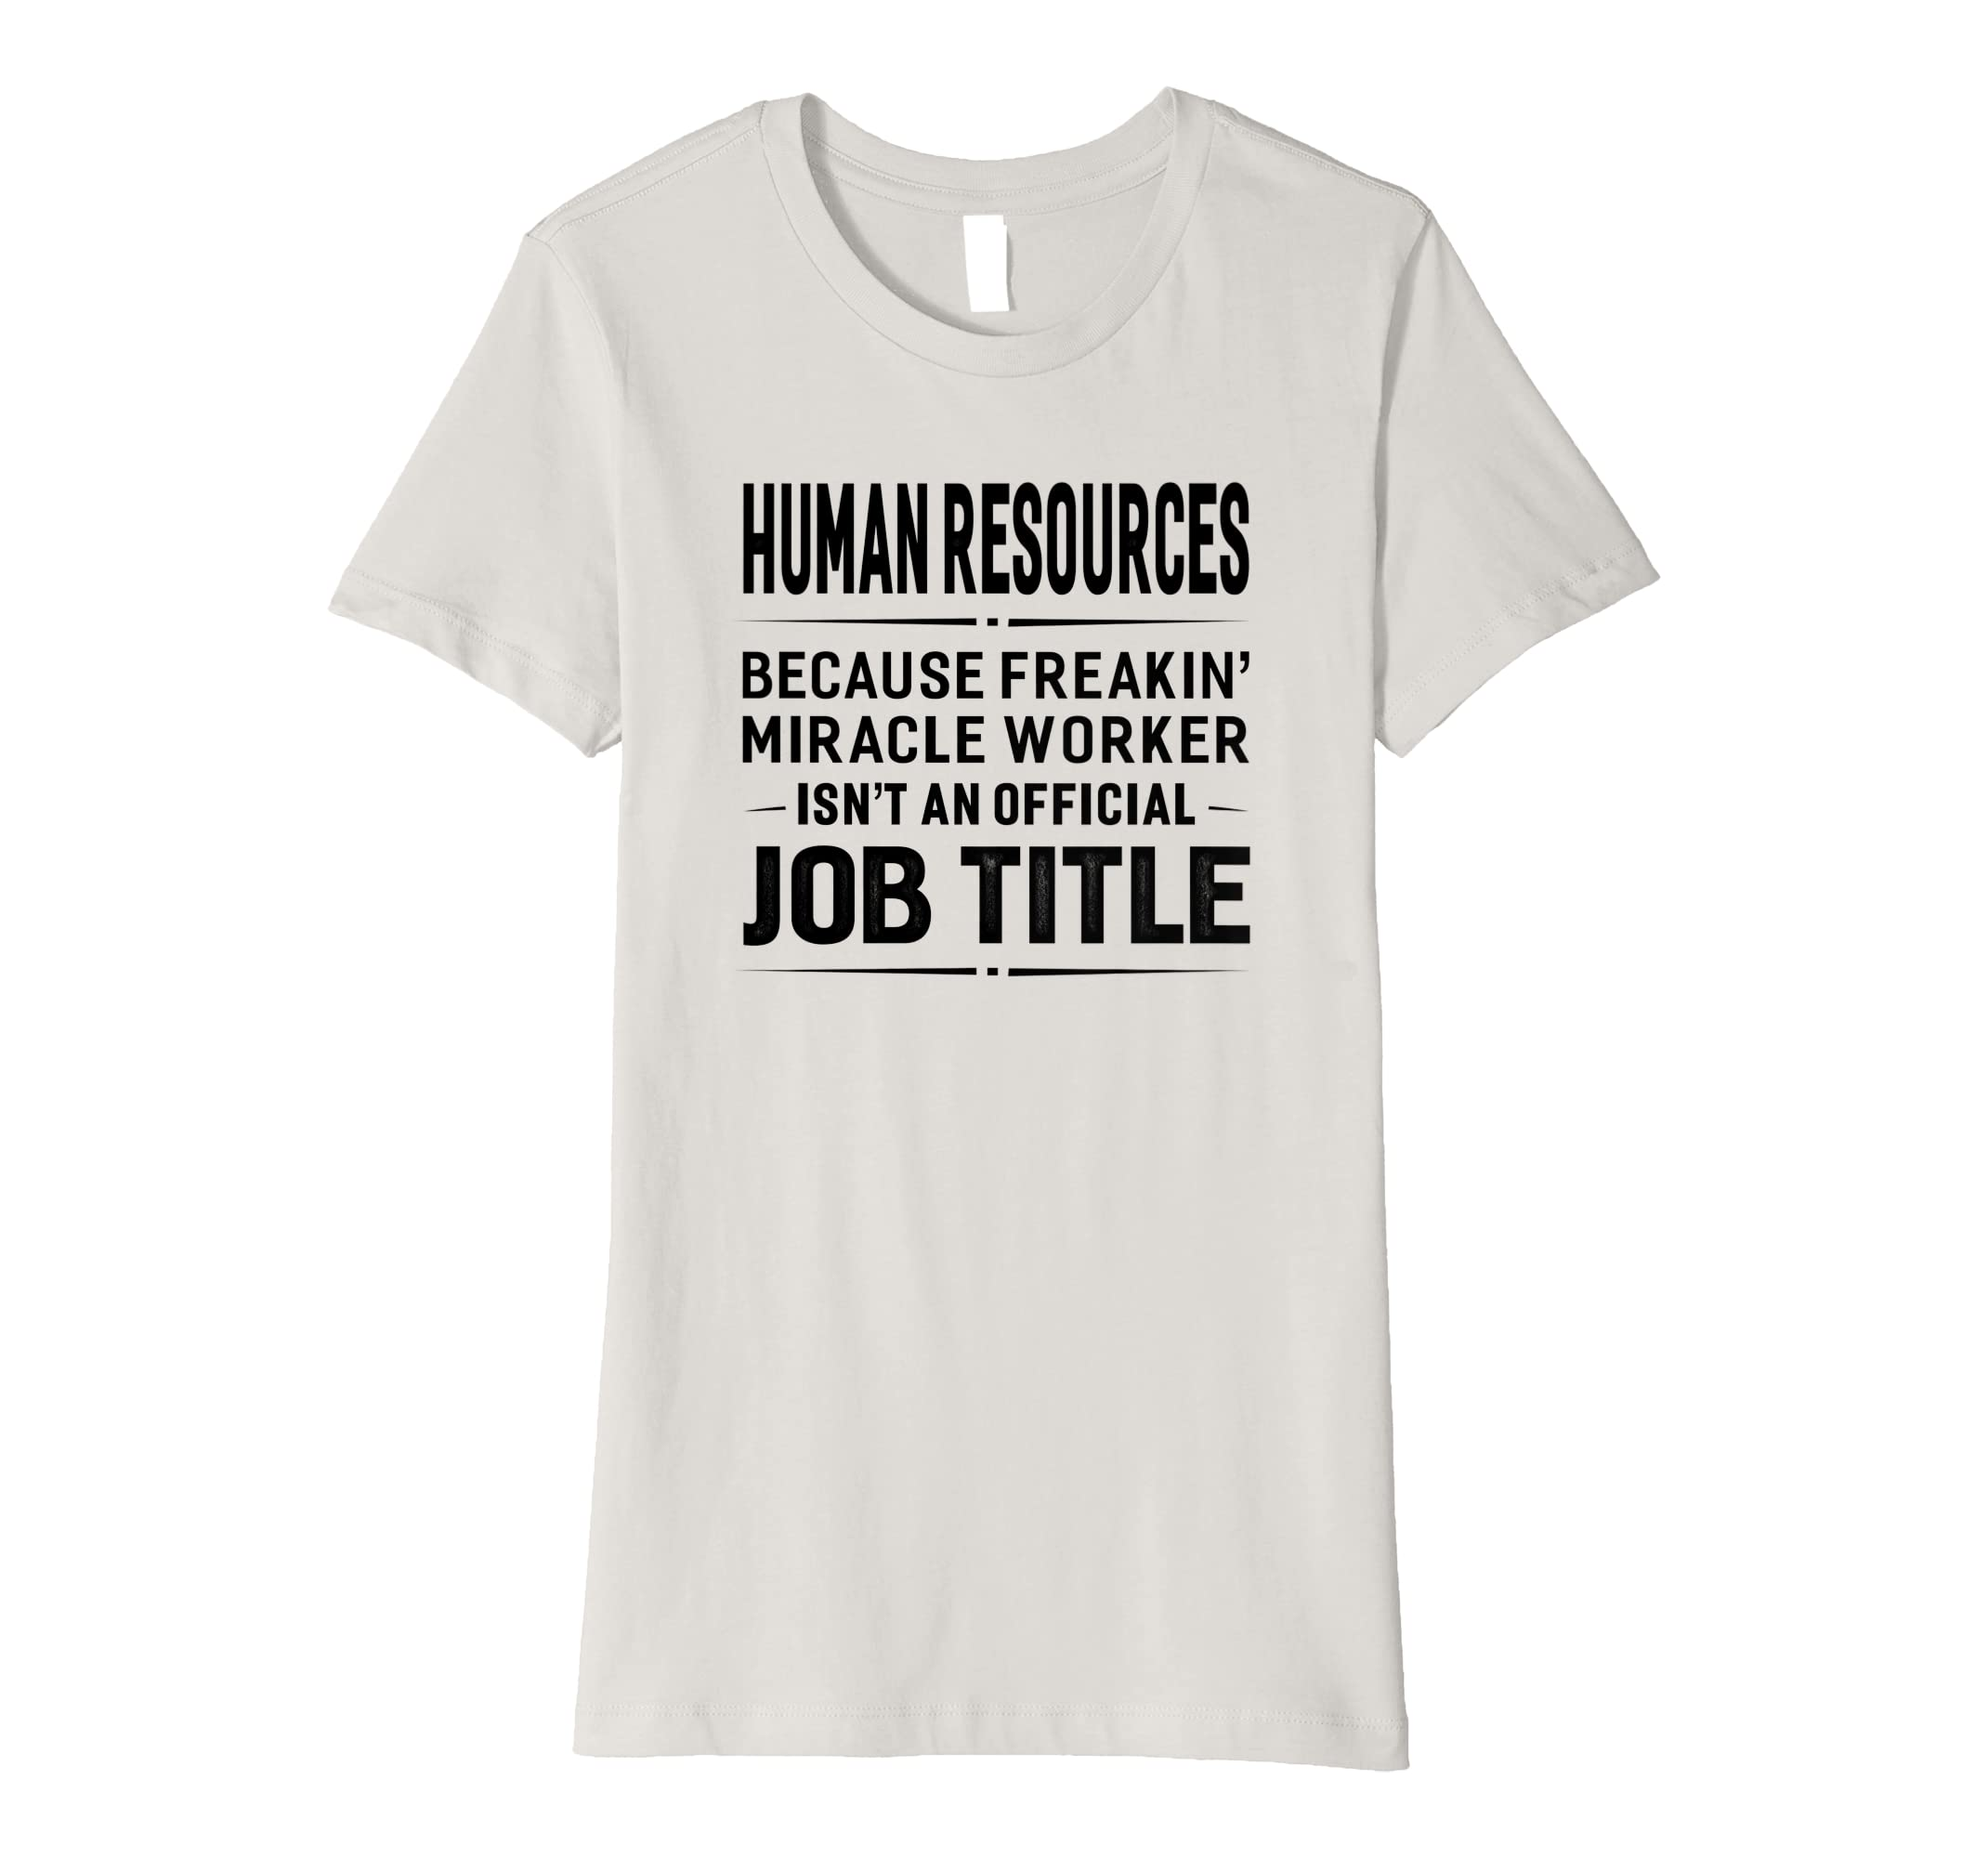 1b91289c Amazon.com: Human Resources Miracle Worker Job Title T-shirt Funny Gift:  Clothing